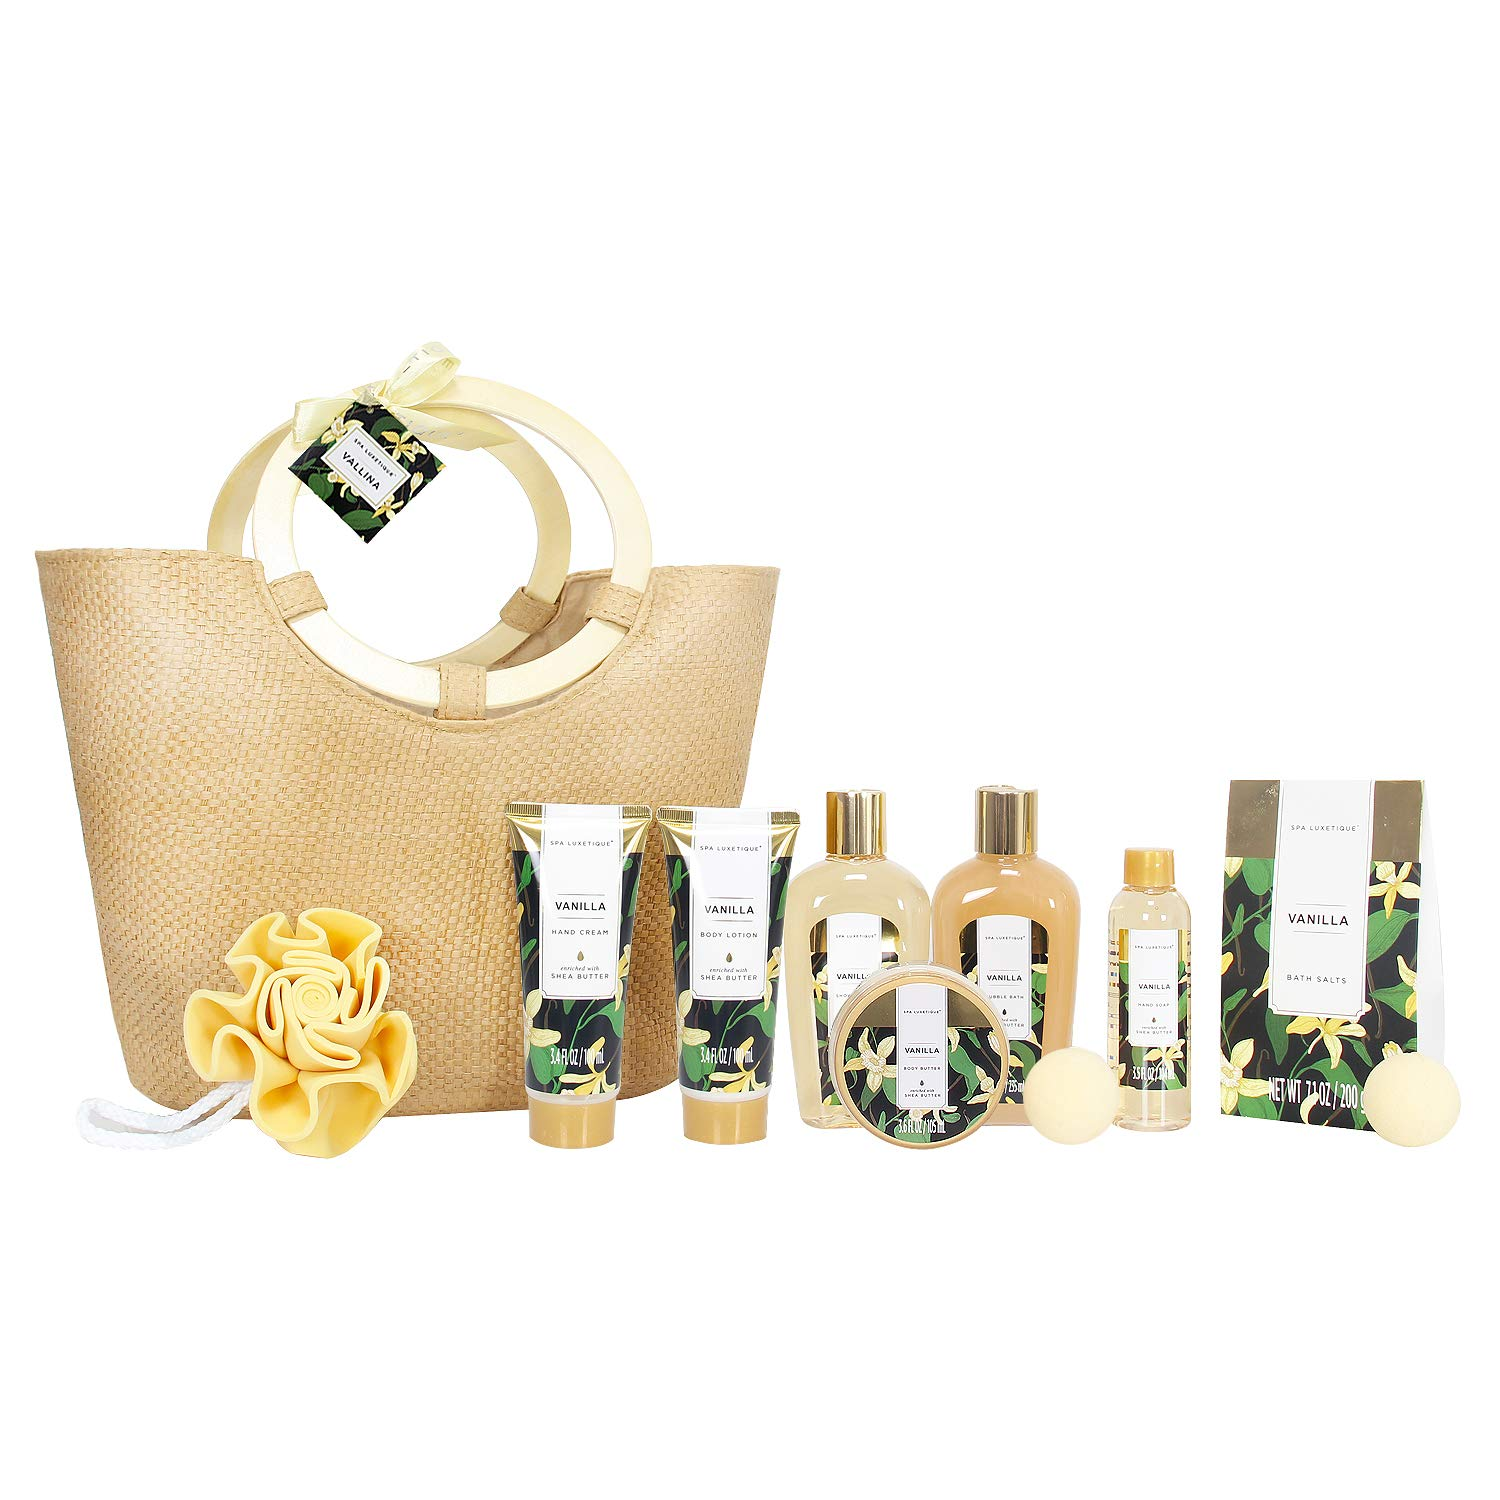 Spa Luxetique Spa Gift Baskets for Women, Premium 10pc Bath Gift Baskets, Vanilla Fragrance Home Spa Gift Set with Bath Bomb, Hand Cream, Bath Pouf Sponge, Best Gift Set for Women or Her.